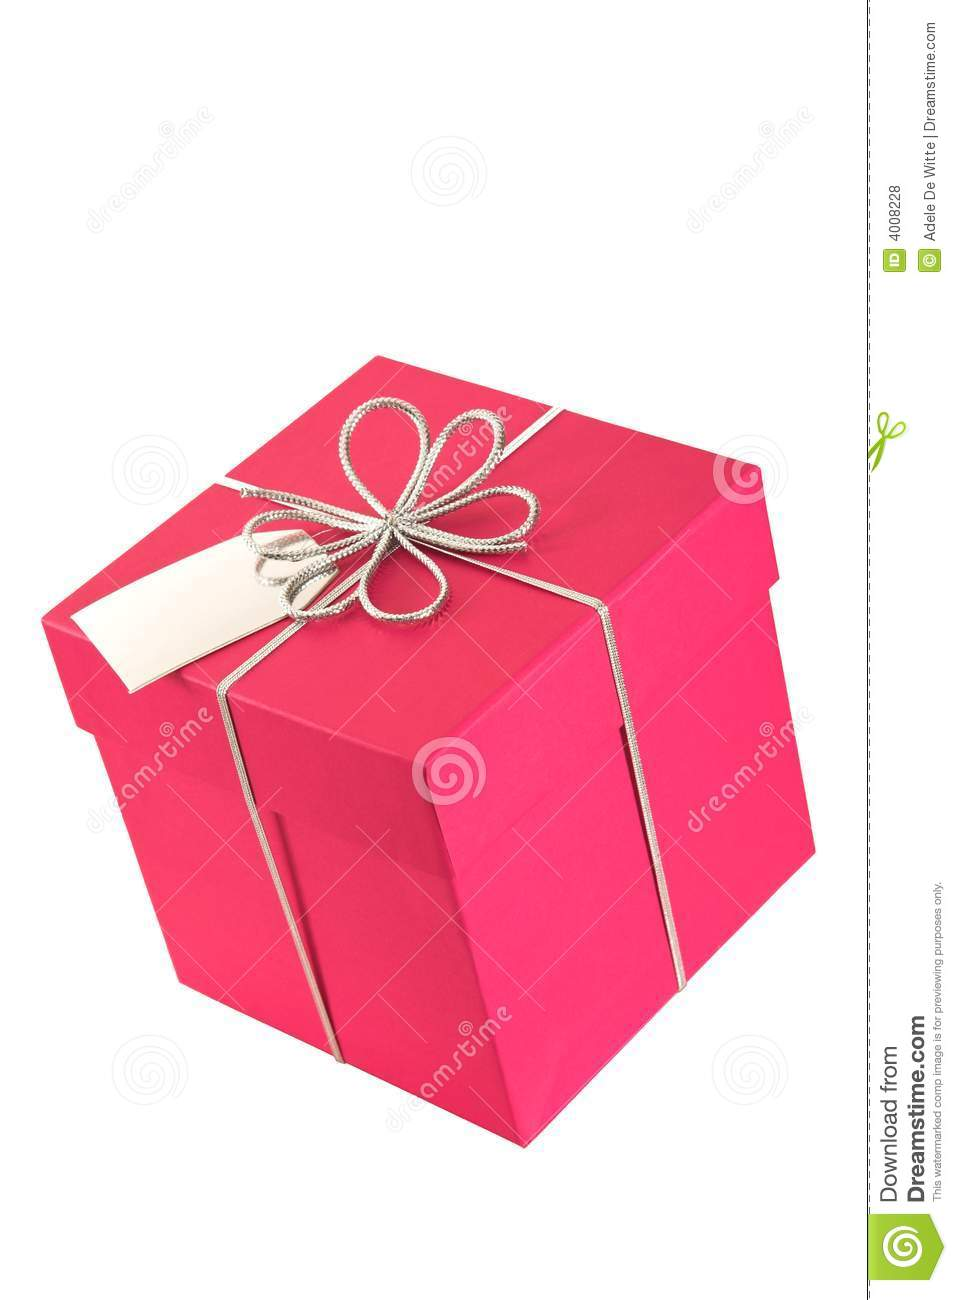 Pink gift box square with bow and tag royalty free stock